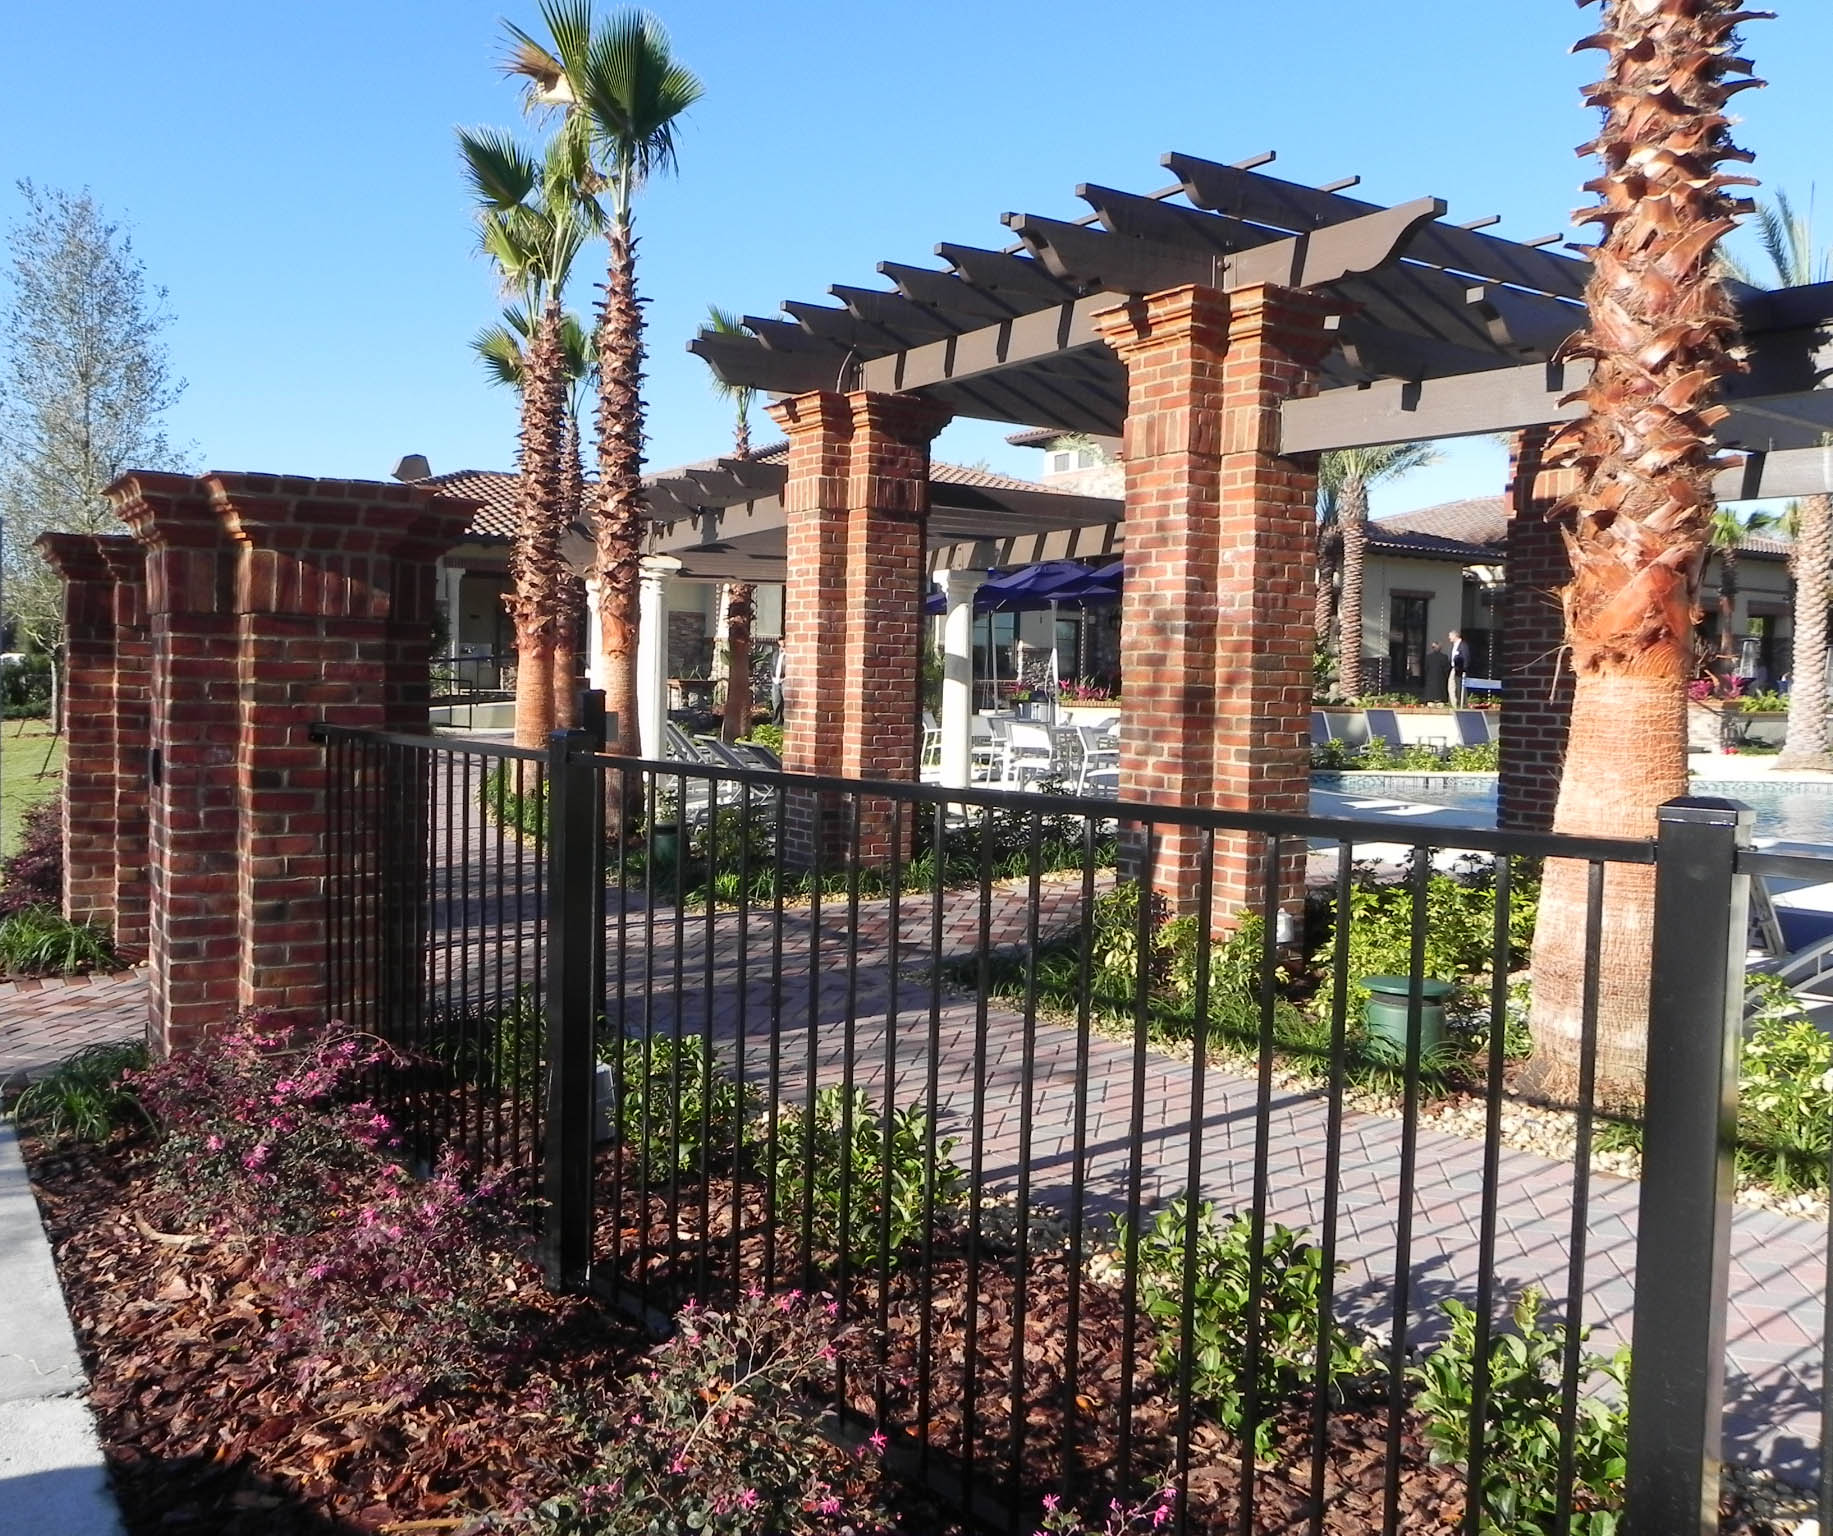 ELM-Estancia-Wiregrass-architecture-landscape-amenity-clubhouse4.jpg